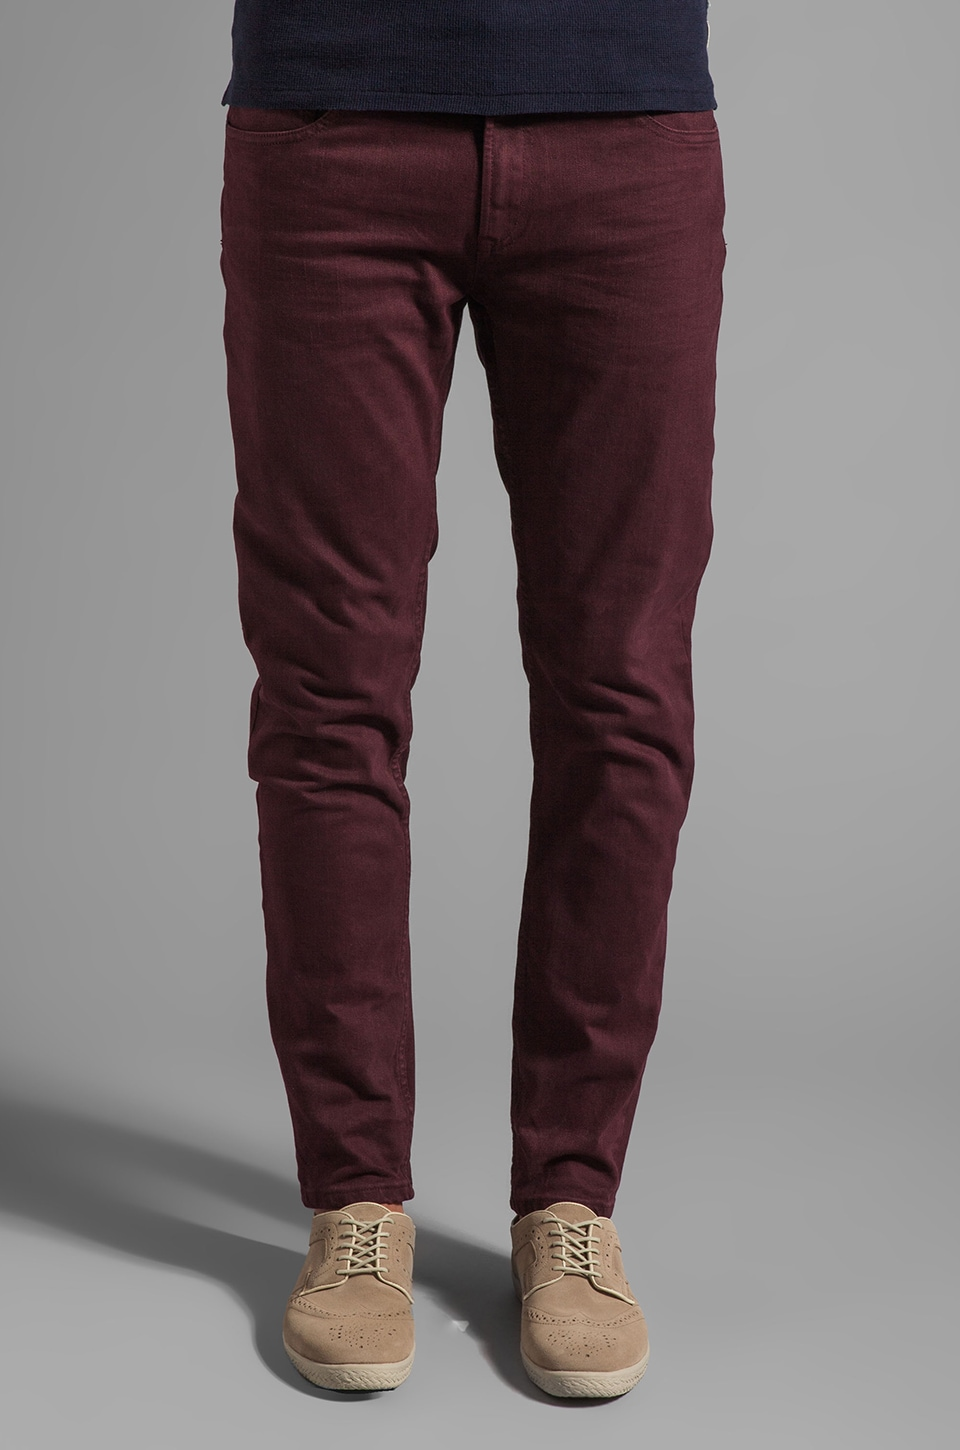 Scotch & Soda Skim Skinny in Red Rust